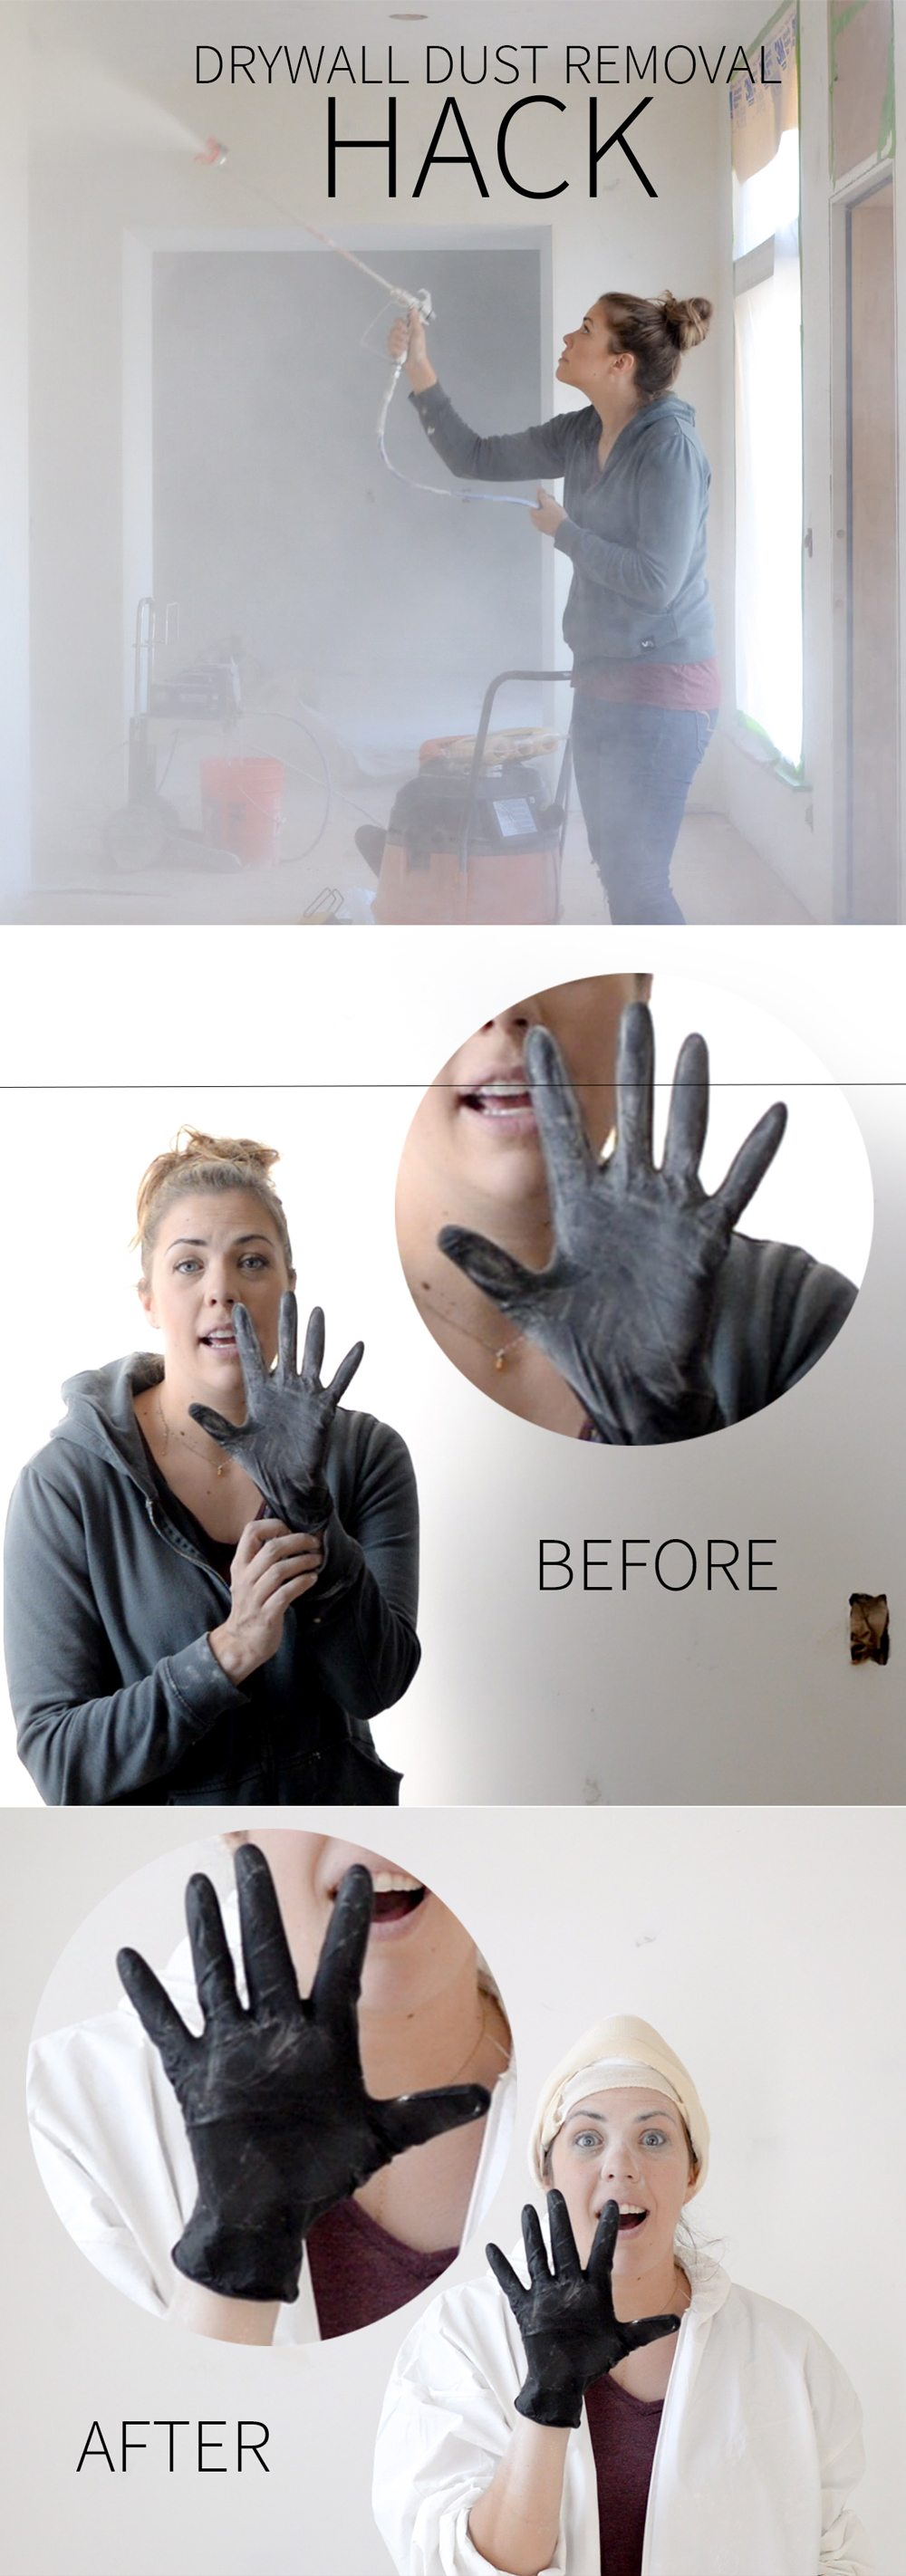 Drywall Dust Removal Hack (That Most Professionals Don't